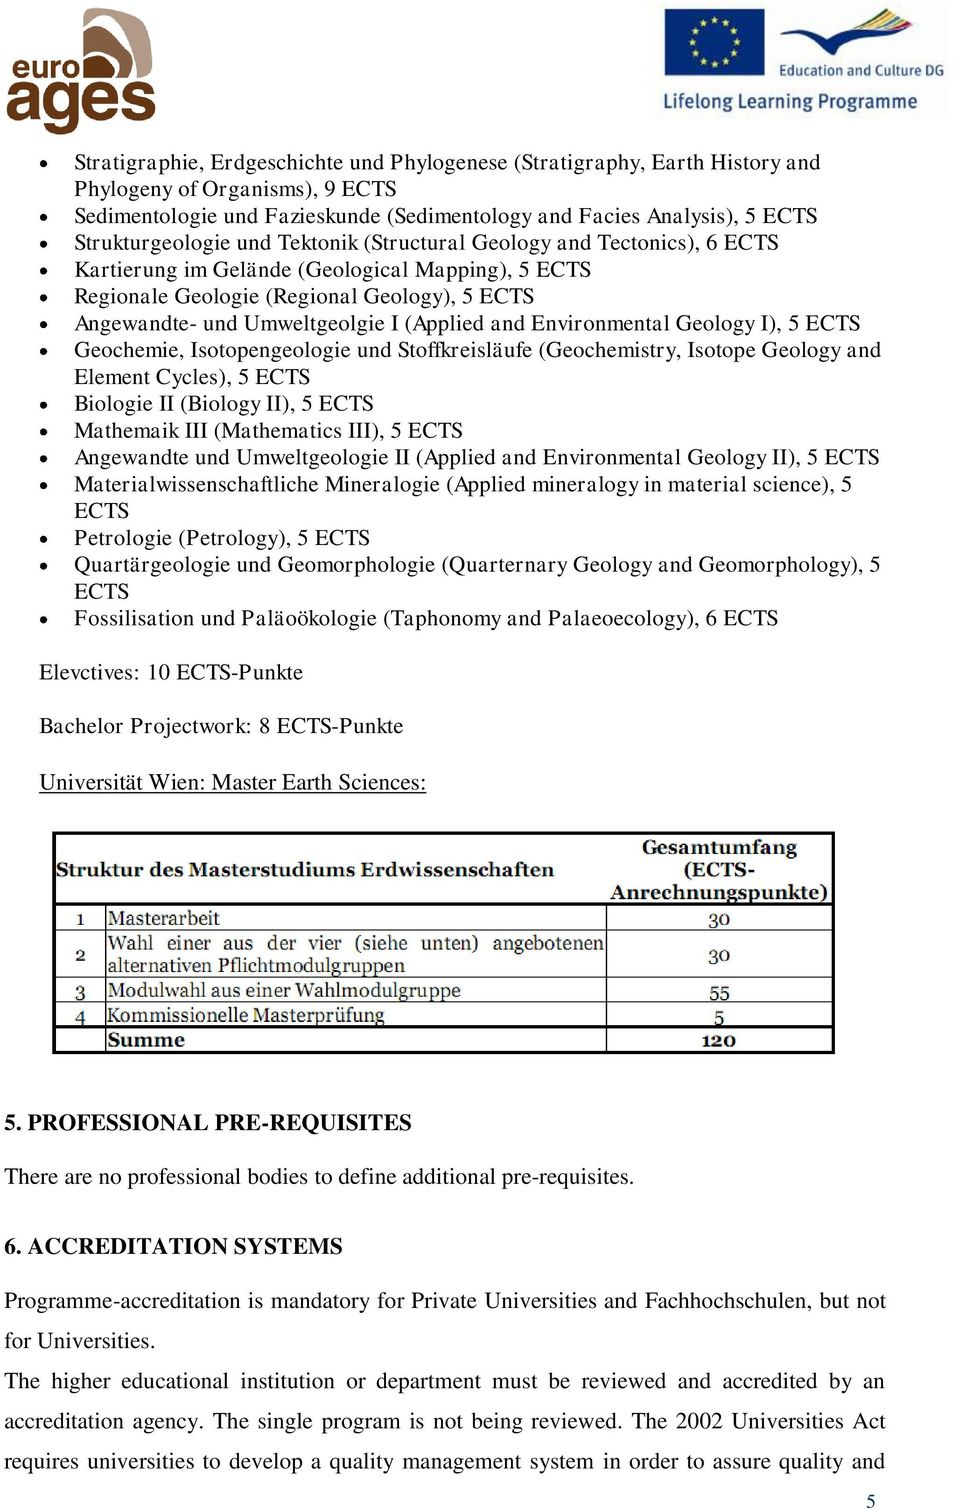 I (Applied and Environmental Geology I), 5 ECTS Geochemie, Isotopengeologie und Stoffkreisläufe (Geochemistry, Isotope Geology and Element Cycles), 5 ECTS Biologie II (Biology II), 5 ECTS Mathemaik